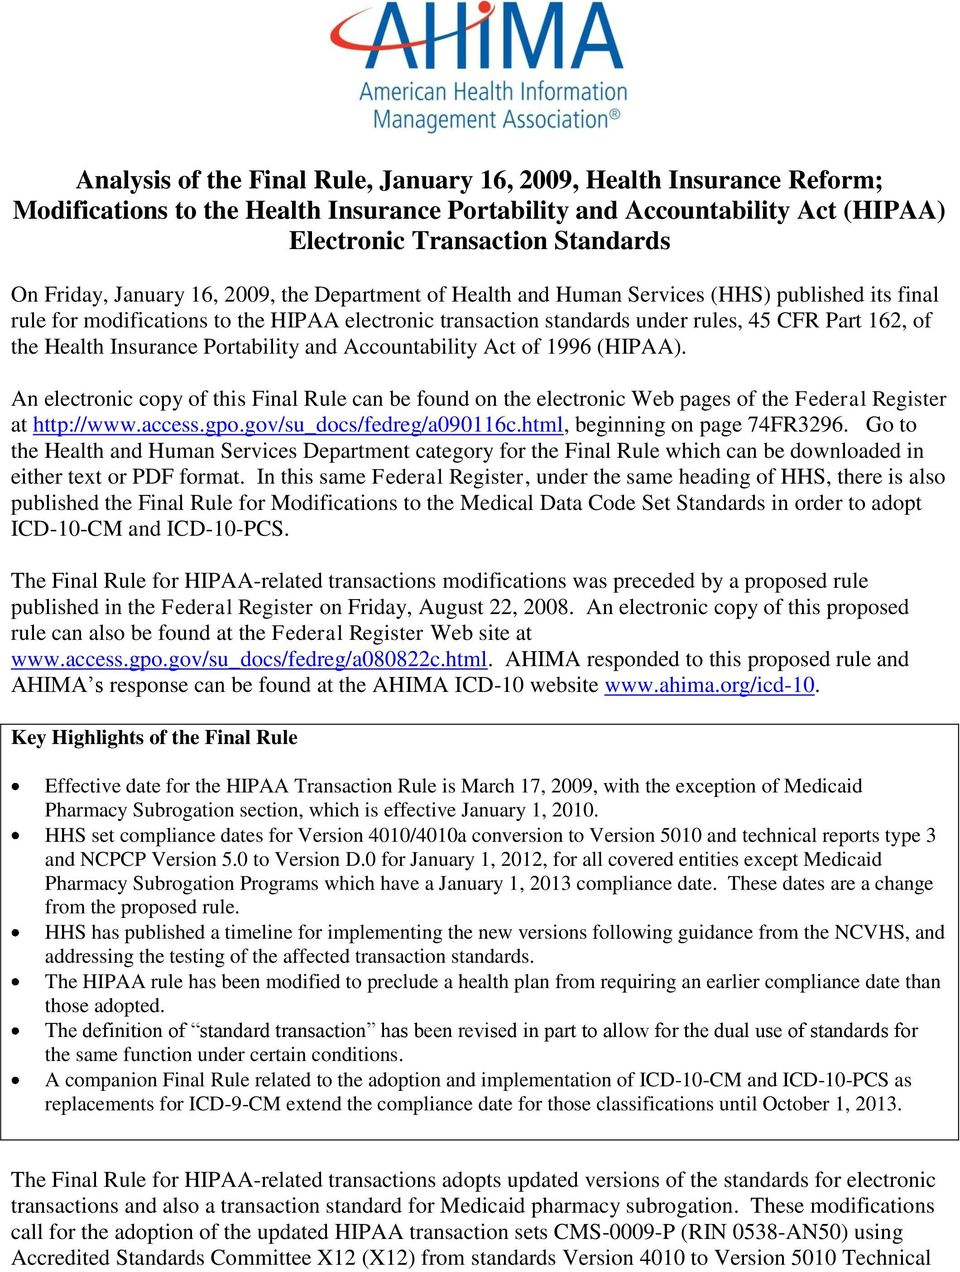 Health Insurance Portability and Accountability Act of 1996 (HIPAA). An electronic copy of this Final Rule can be found on the electronic Web pages of the Federal Register at http://www.access.gpo.